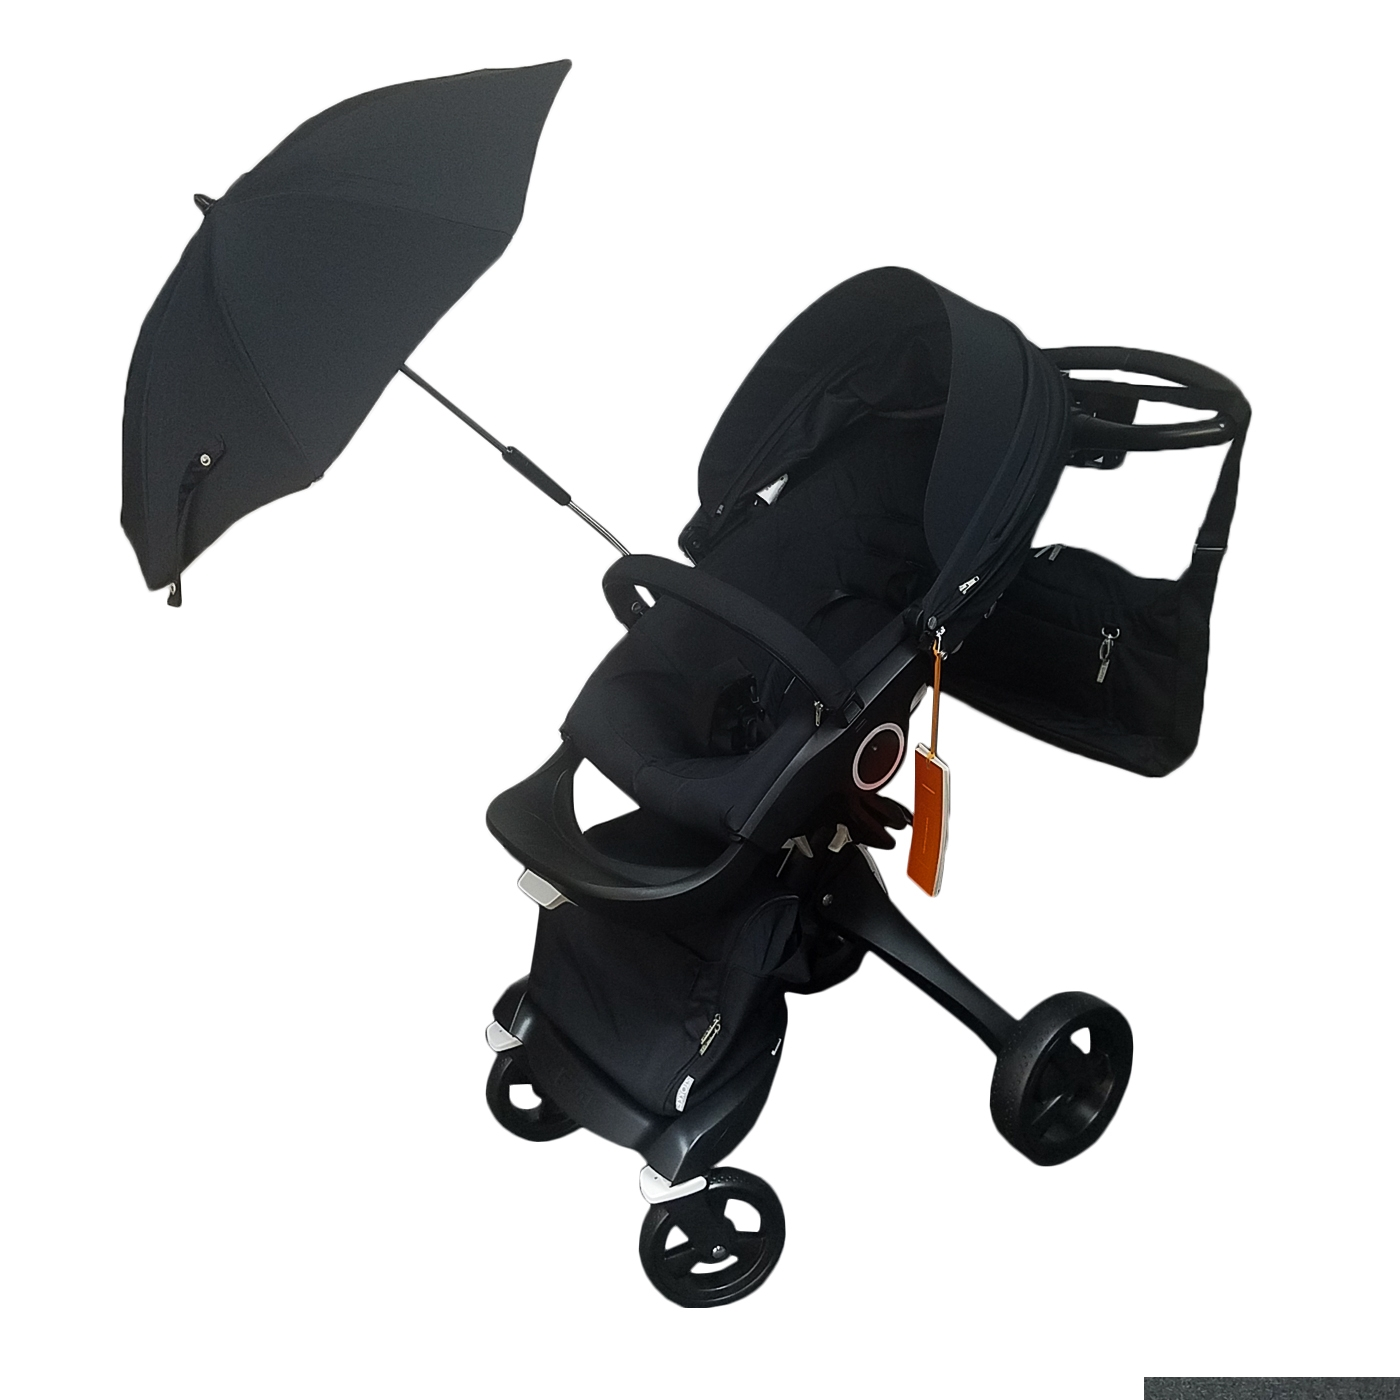 Stokke Xplory V4 Baby Stroller in TRUE BLACK Bundle Limited Edition